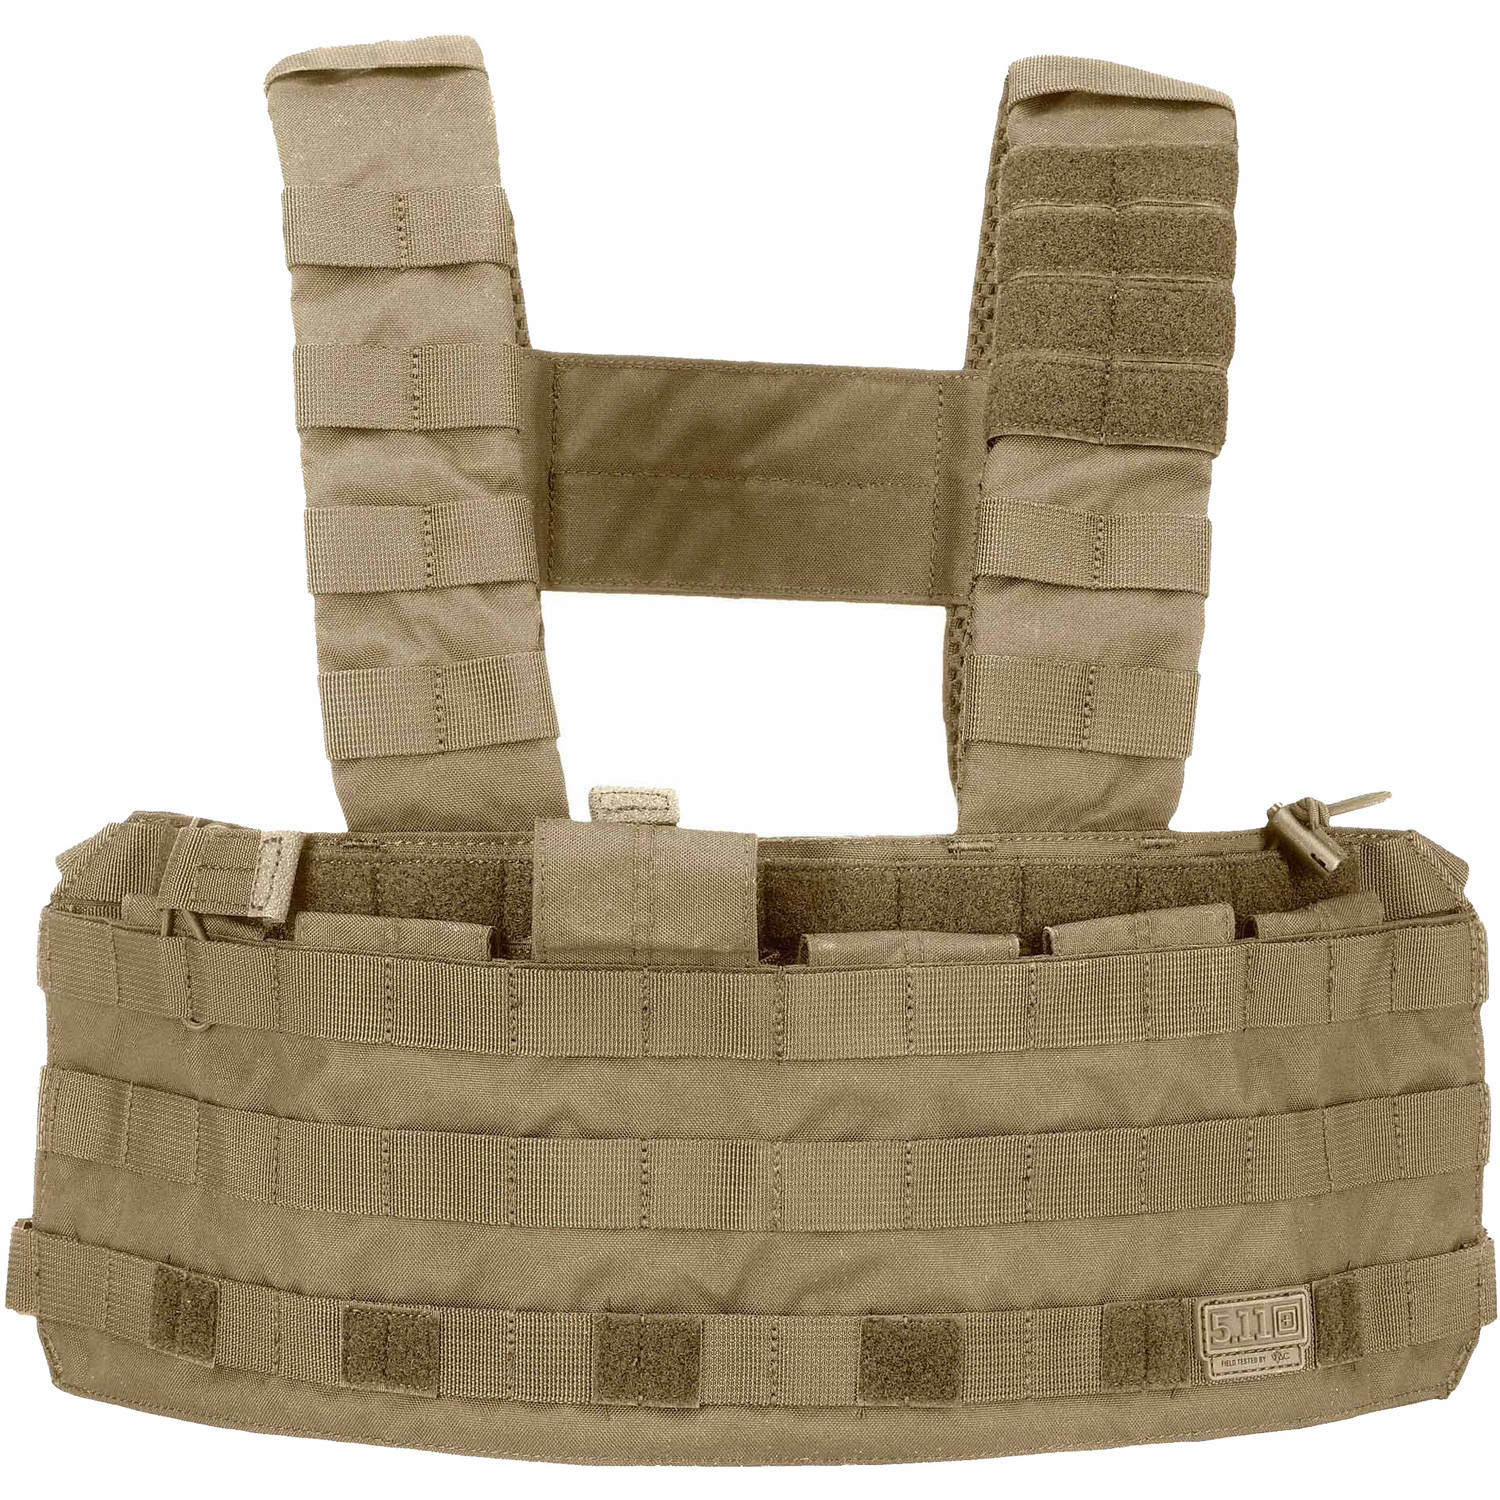 5.11 Tactical Tactec Chest Rig with Molled Exterior Webbing and Padded Shoulder Straps, Sandstone